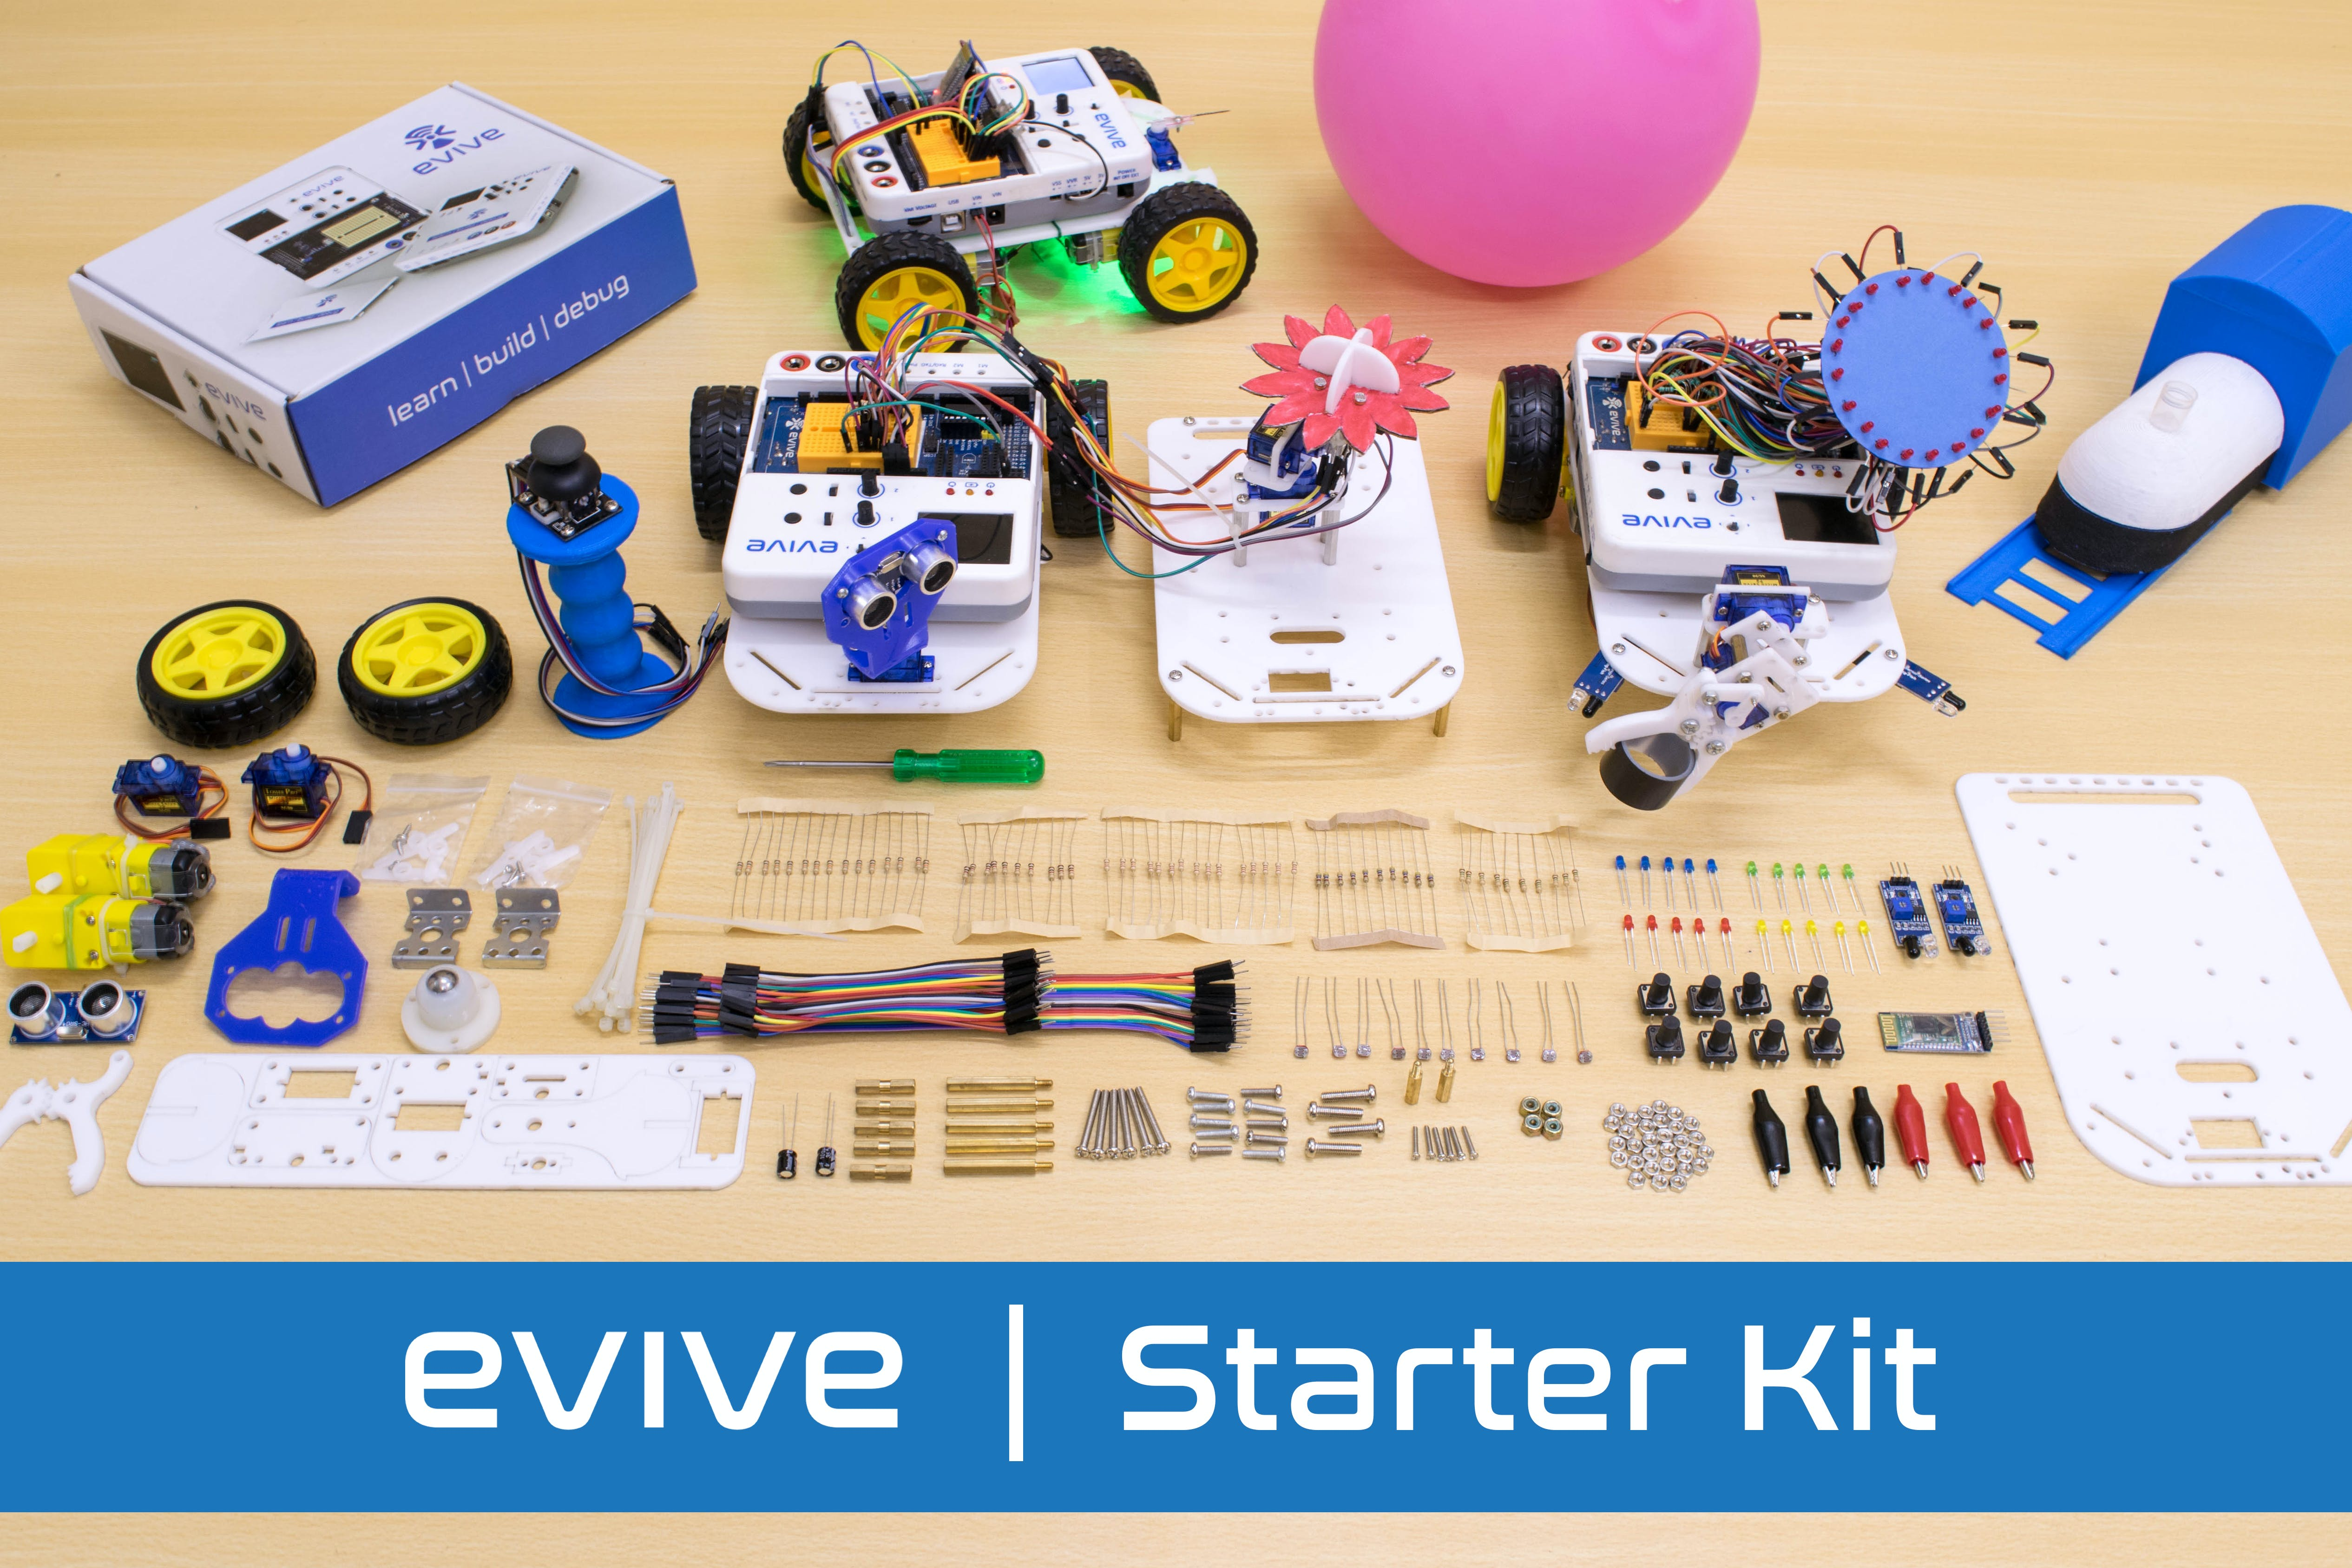 Starterkit 3x2 evive v2t1gexefq